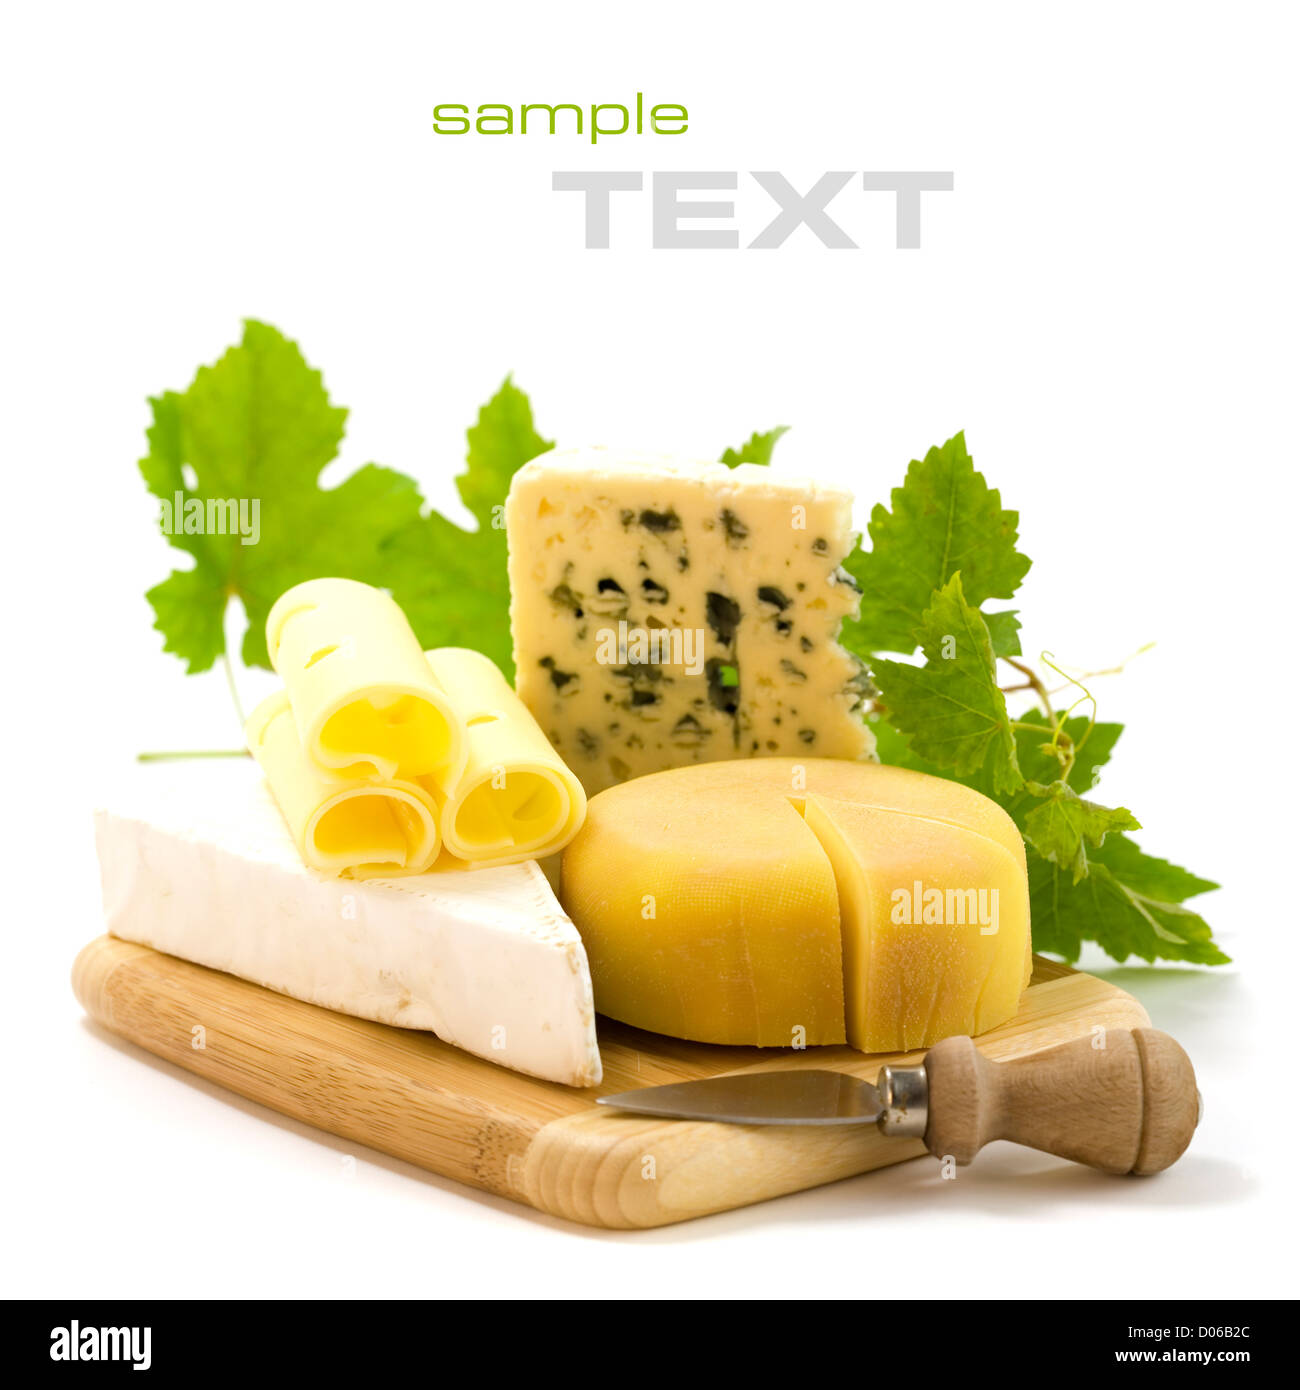 4 kinds of cheese with a cheese knife and grape leaves. With sample text - Stock Image